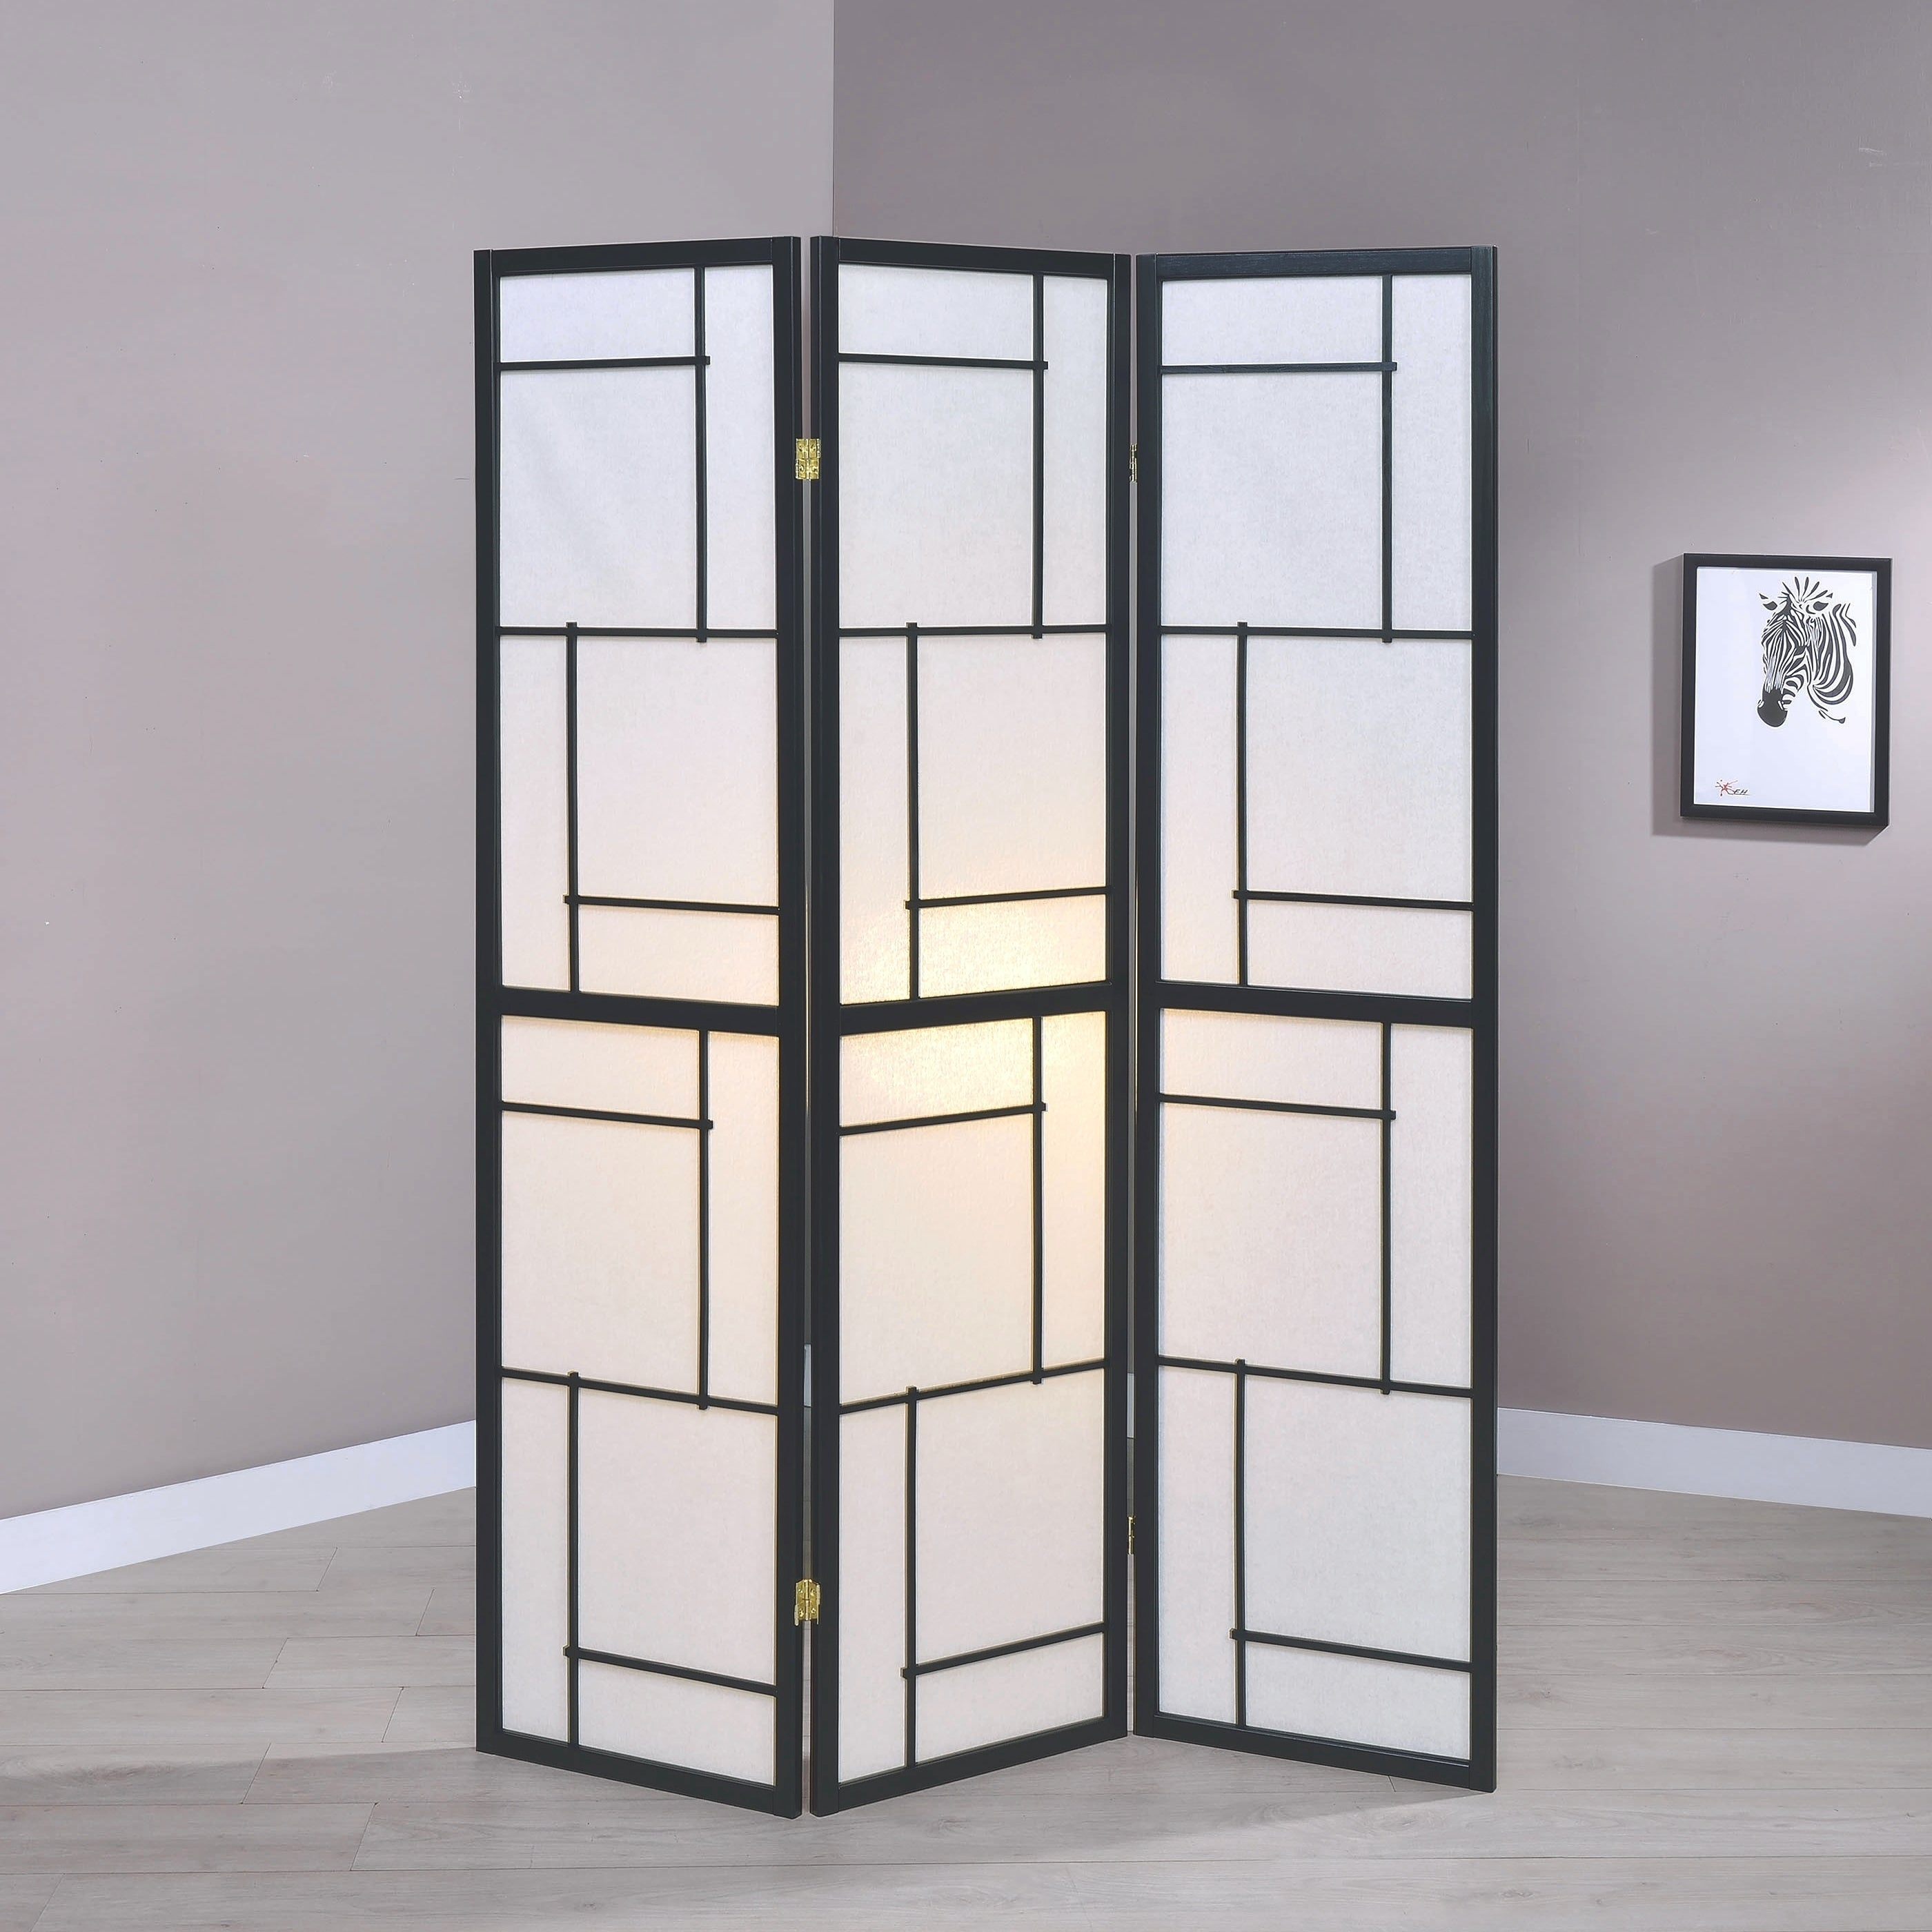 Contemporary Geometric Pattern Folding Screens Room Divider Overstock 28353544